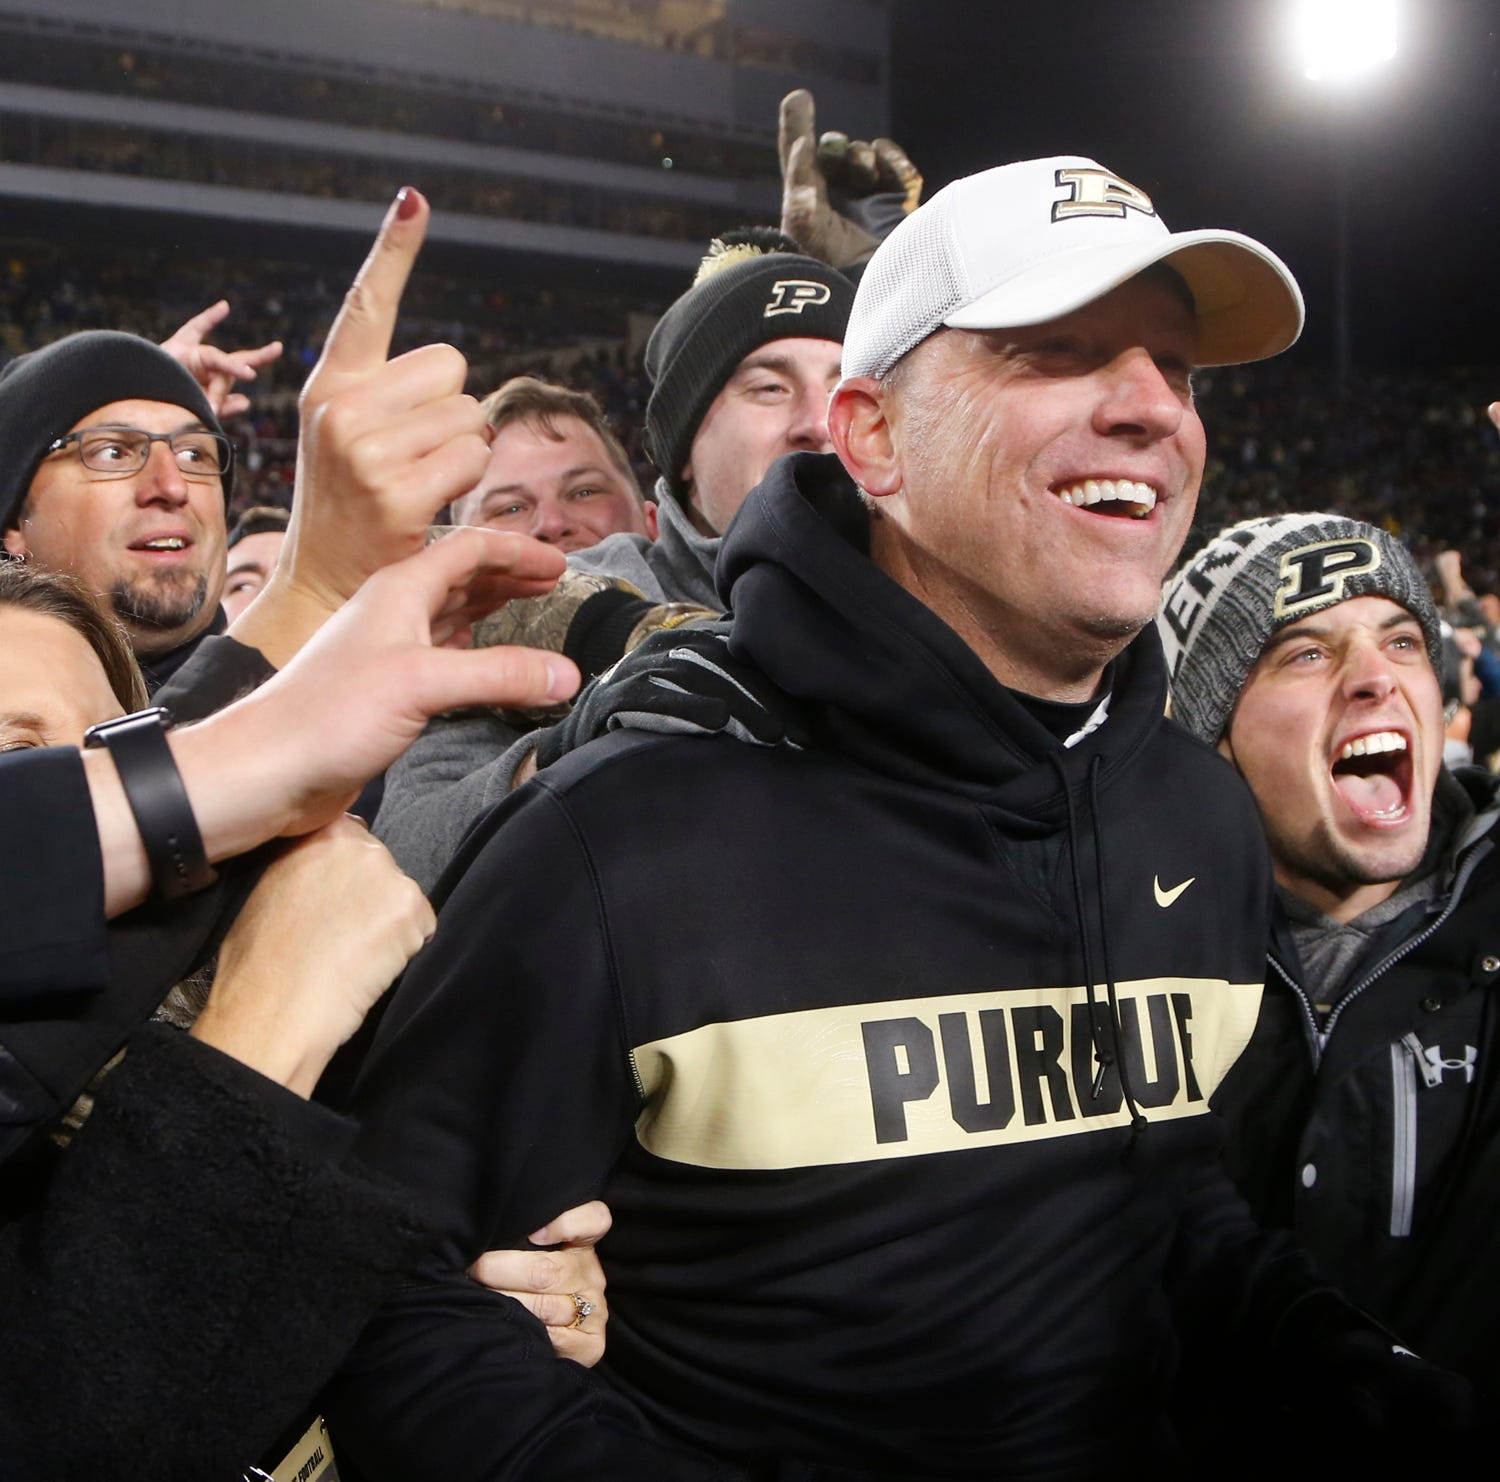 Louisville's football opening and Purdue's Jeff Brohm | What it means